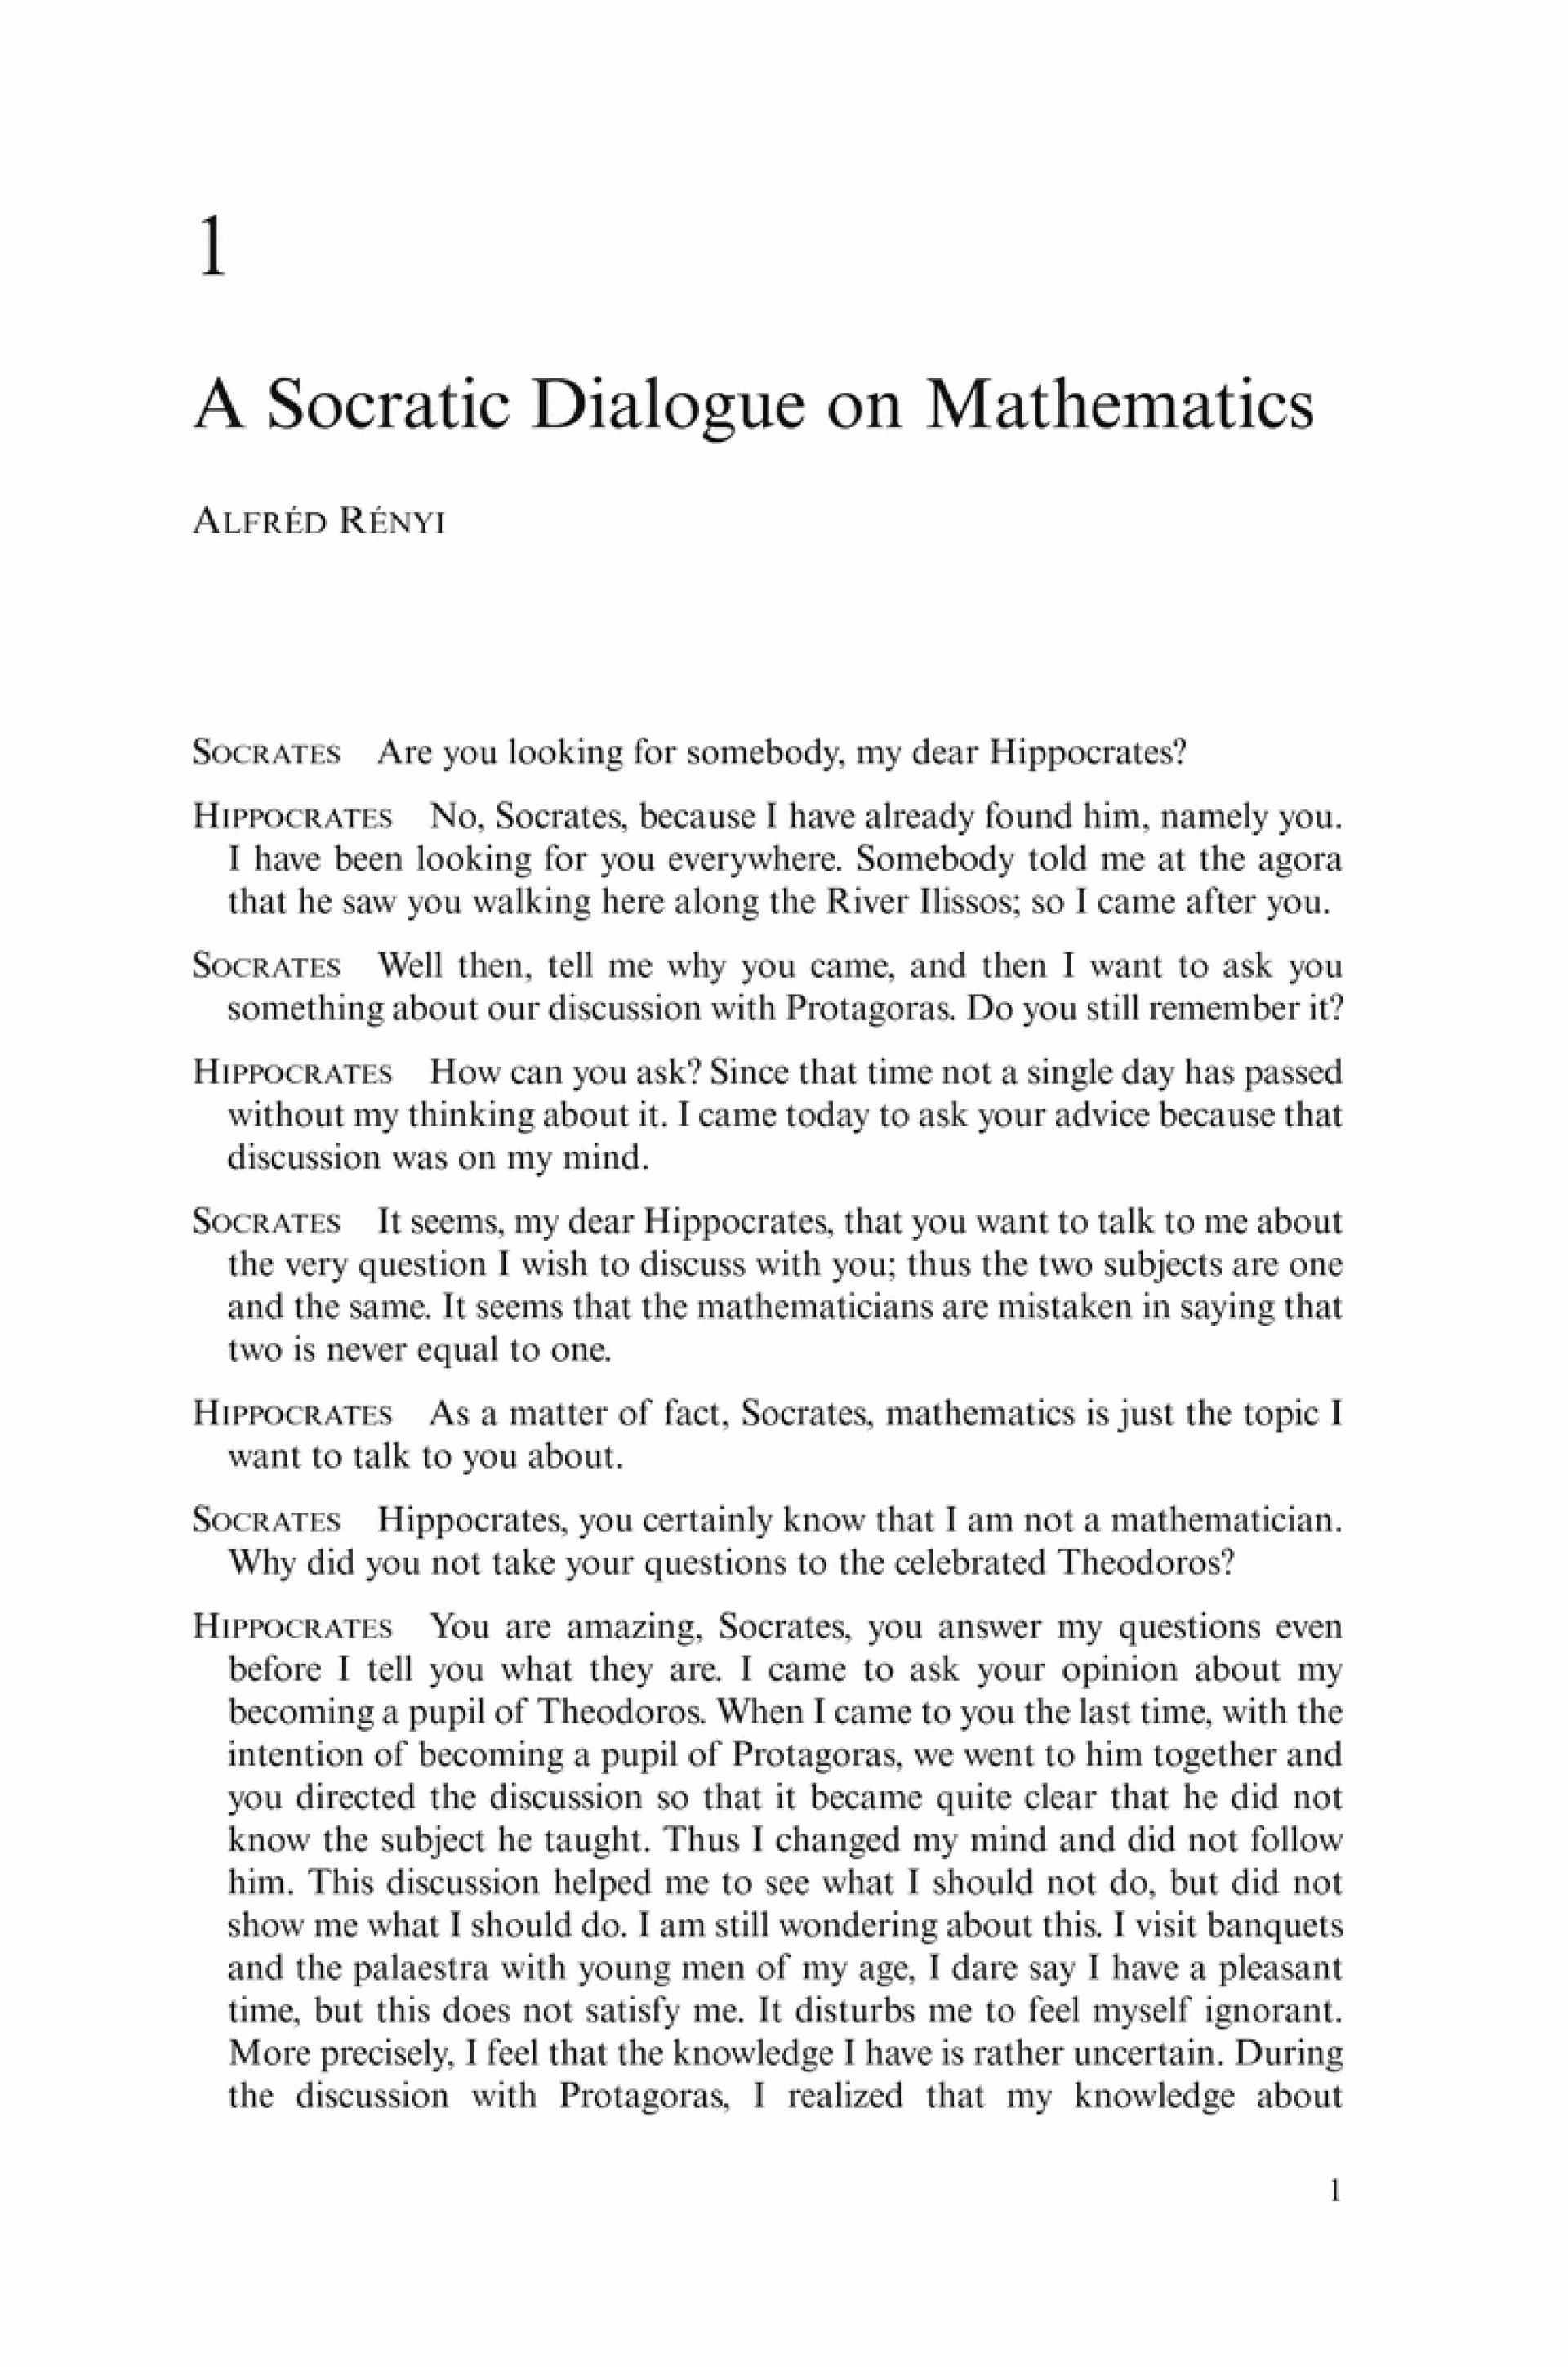 002 Essay Example Dialogue Socratic On Mathematics Springer L Awful Dialog Examples Format Sample 1920